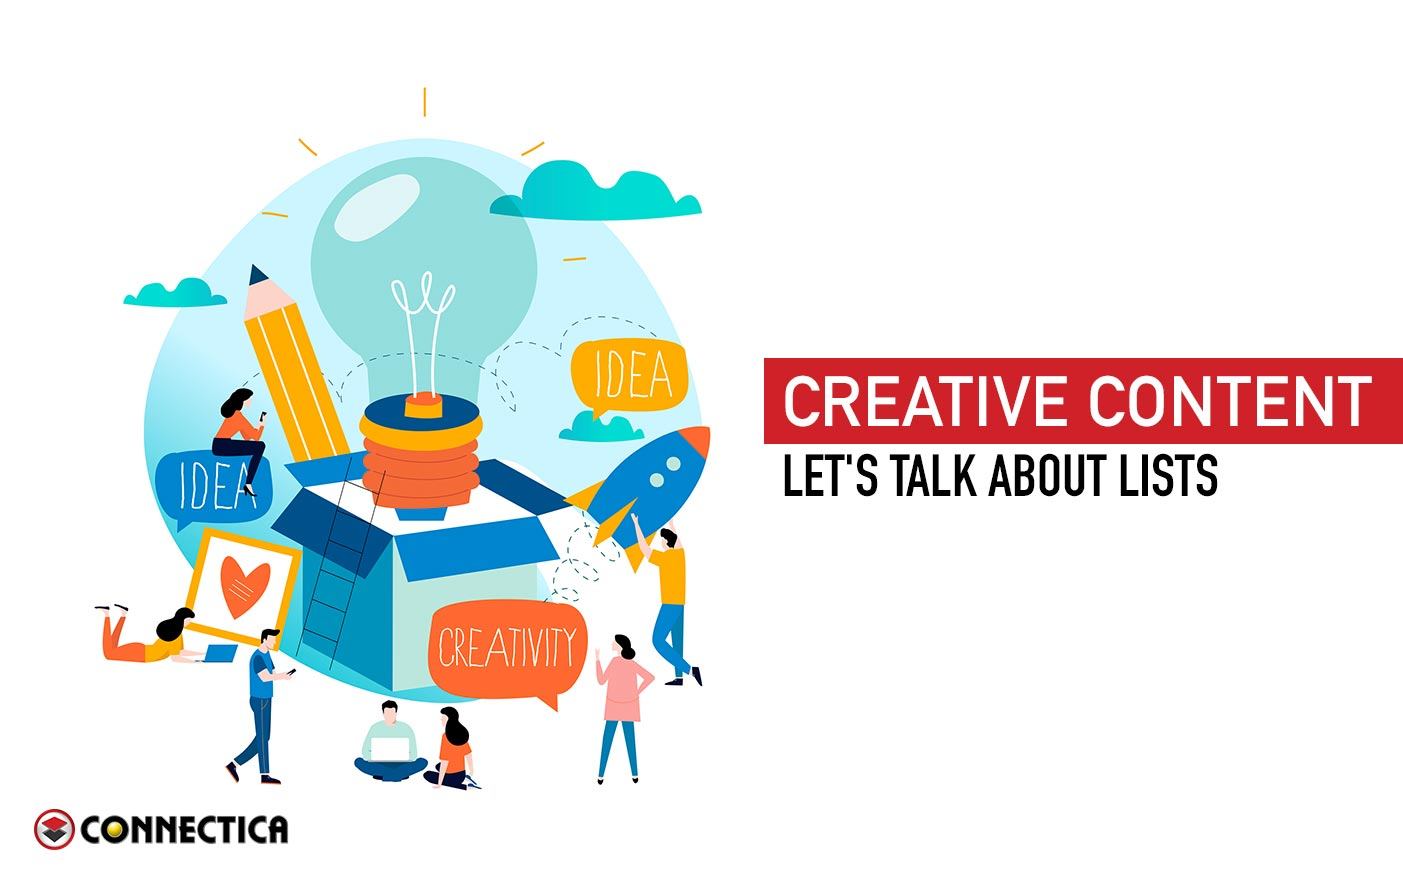 Creative Content: Let's Talk About Lists